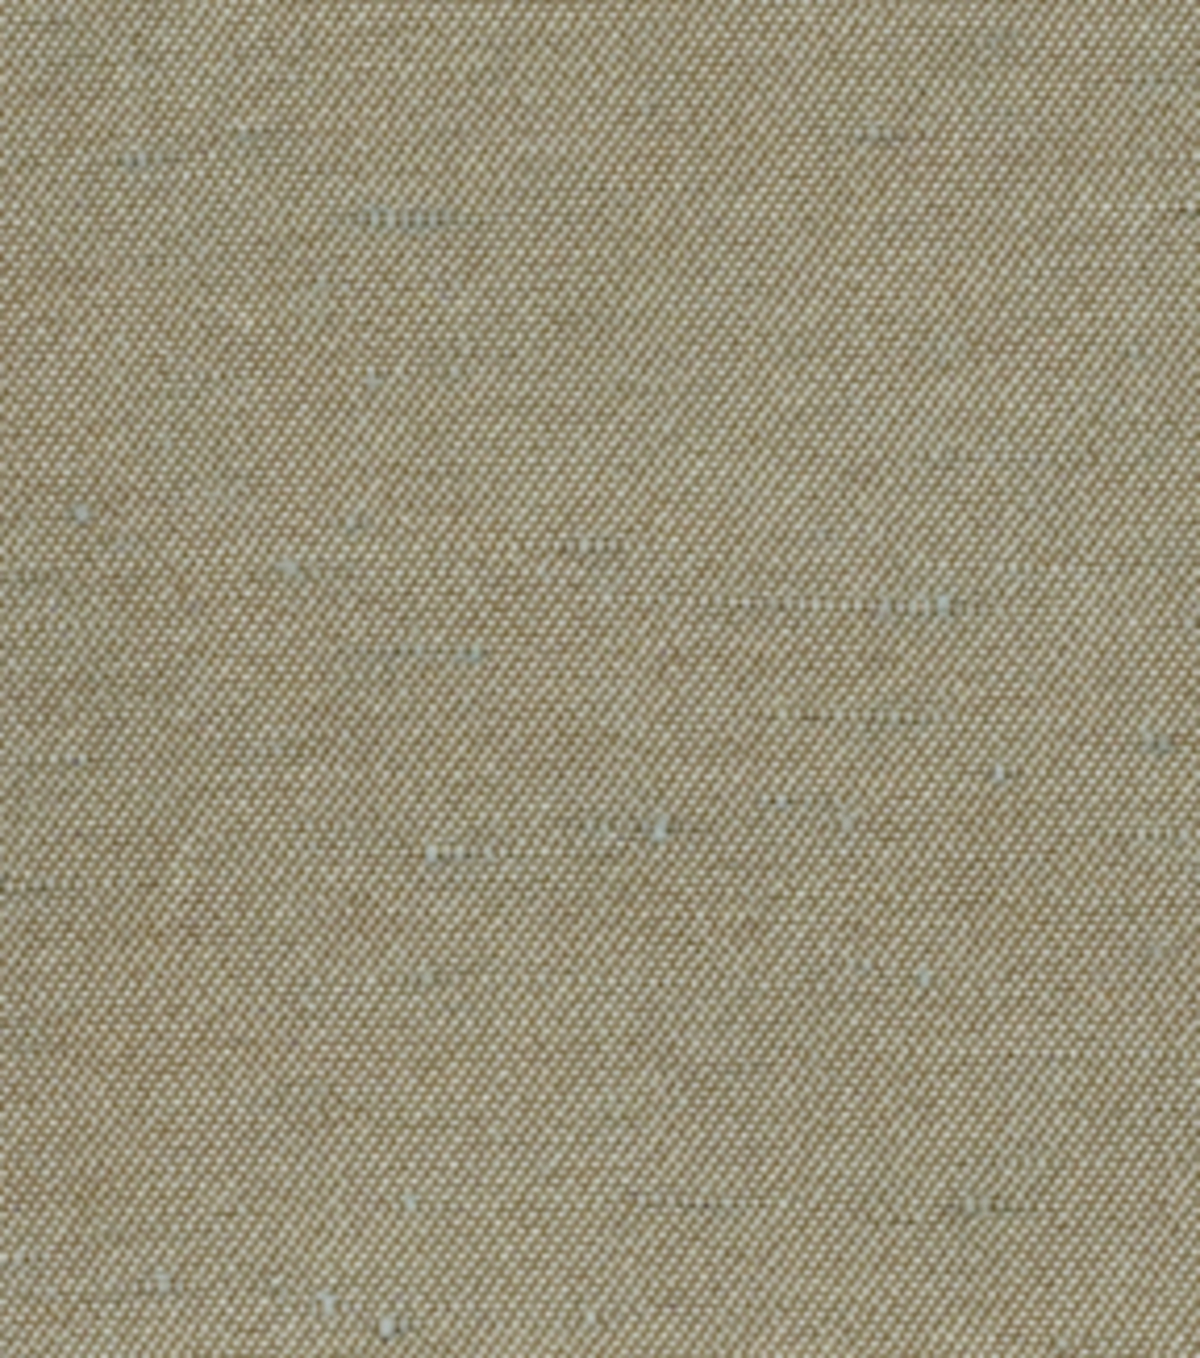 Home Decor 8\u0022x8\u0022 Fabric Swatch-Signature Series Antique Satin Juniper